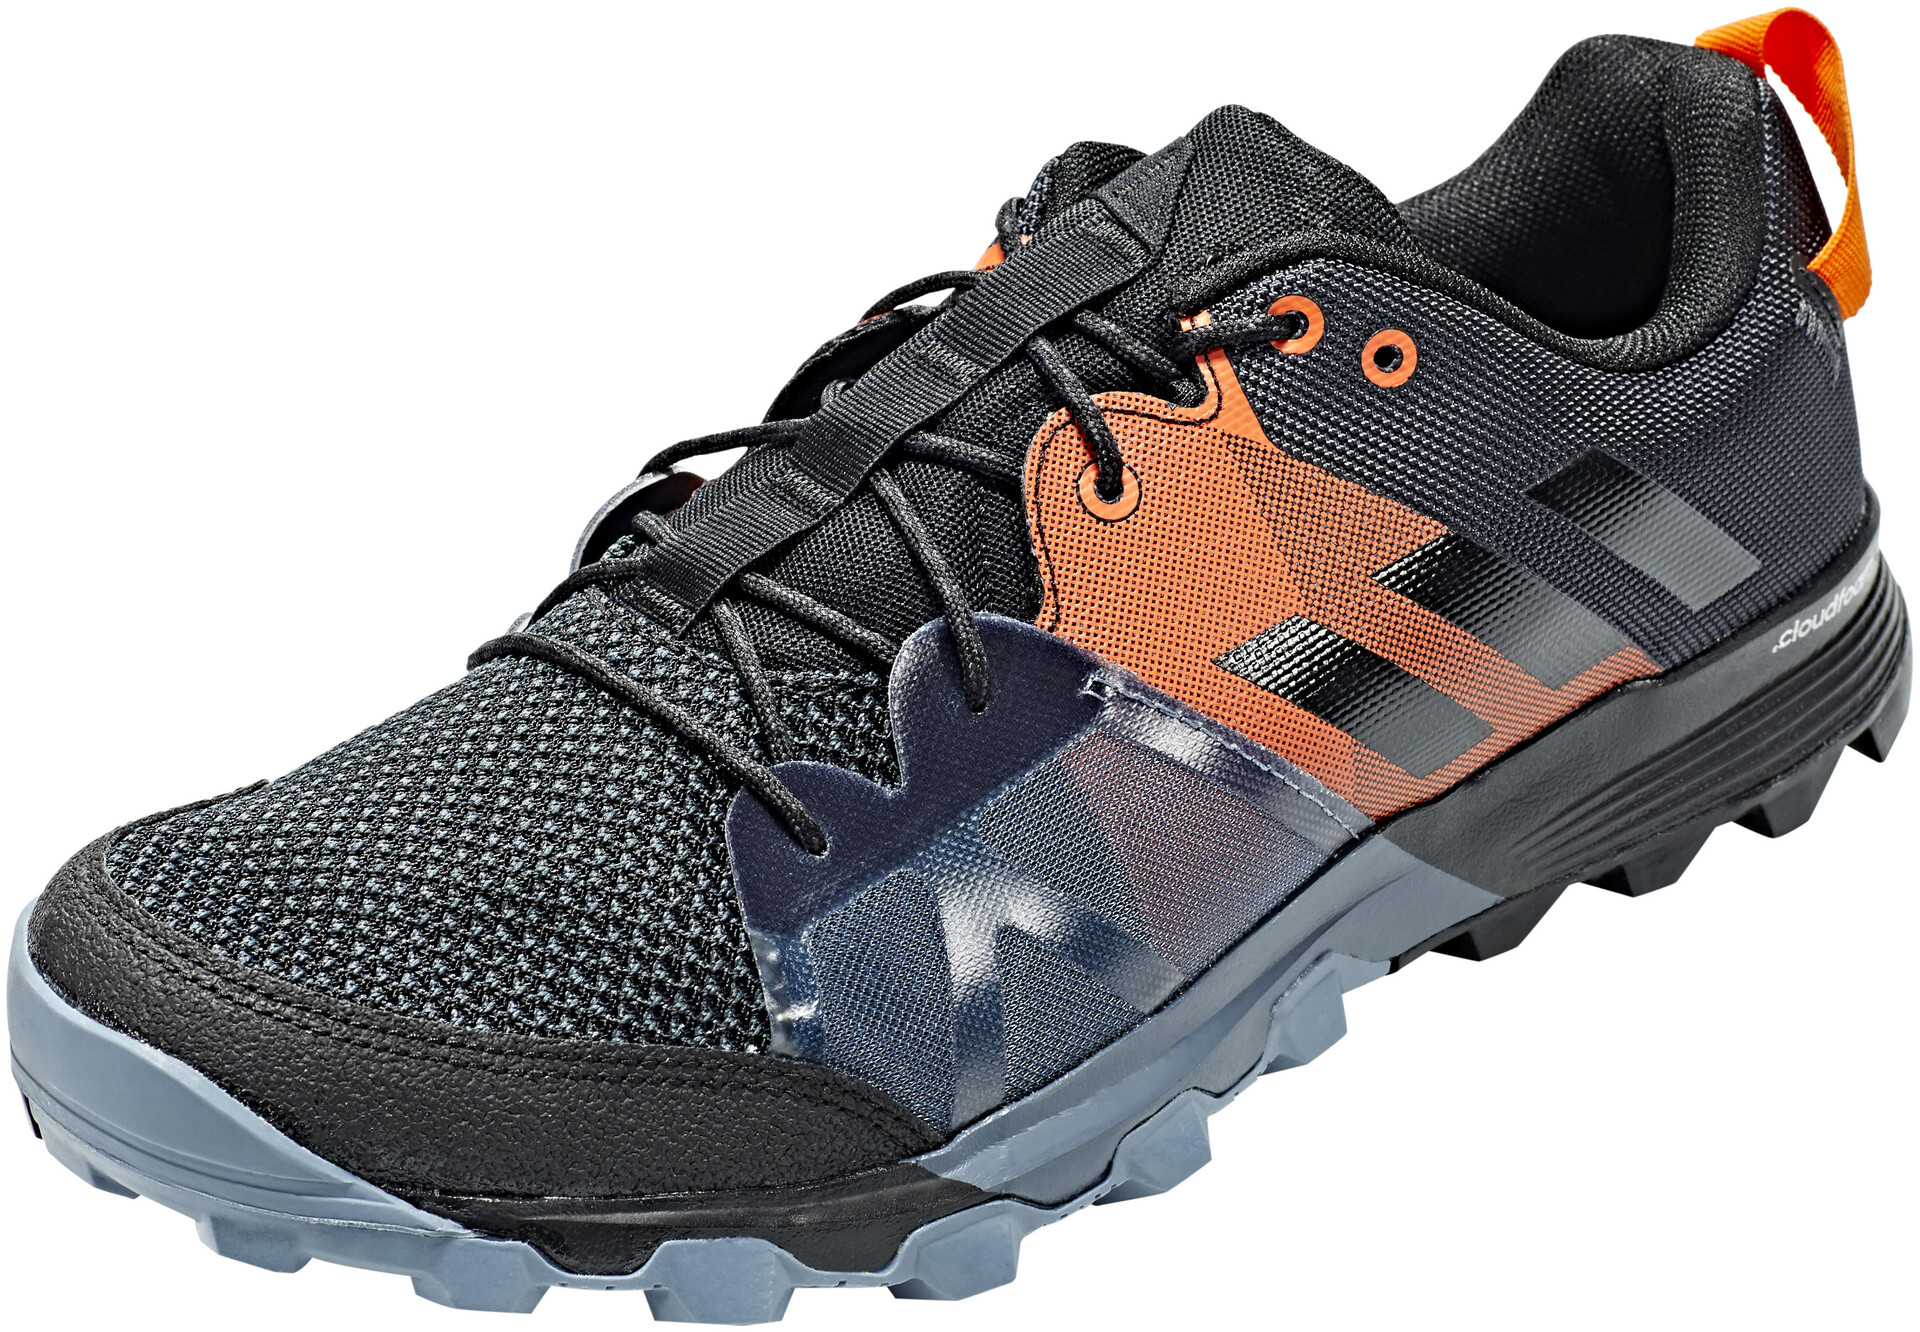 online retailer ef772 6e959 ... buy adidas kanadia 8.1 trail shoes men carbon core black orange dd6a8  f4574